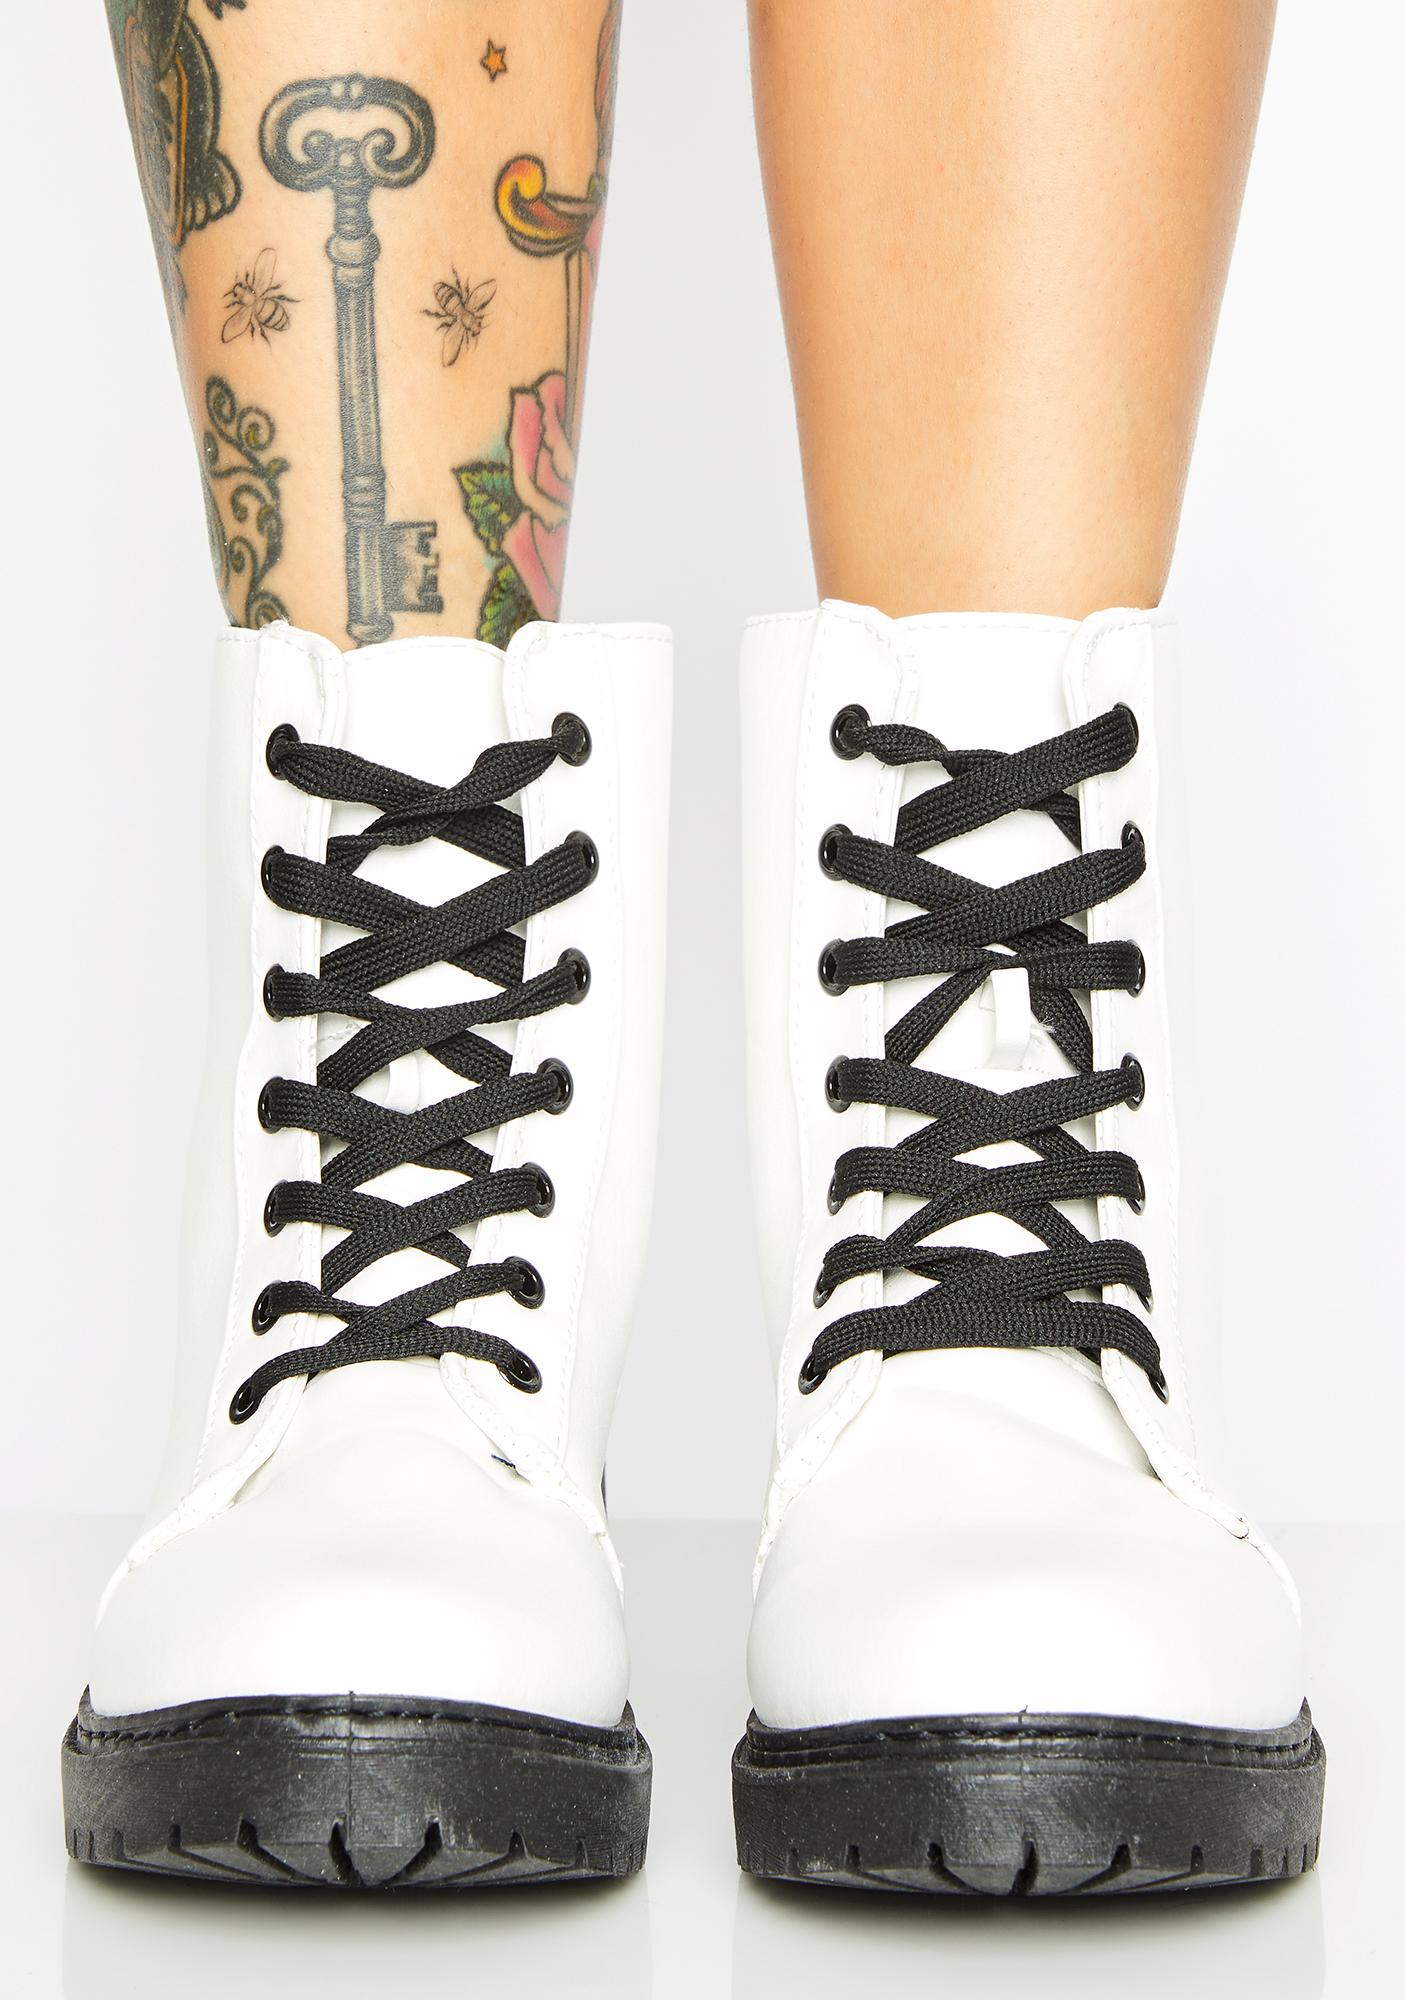 Absent Minded Combat Boots